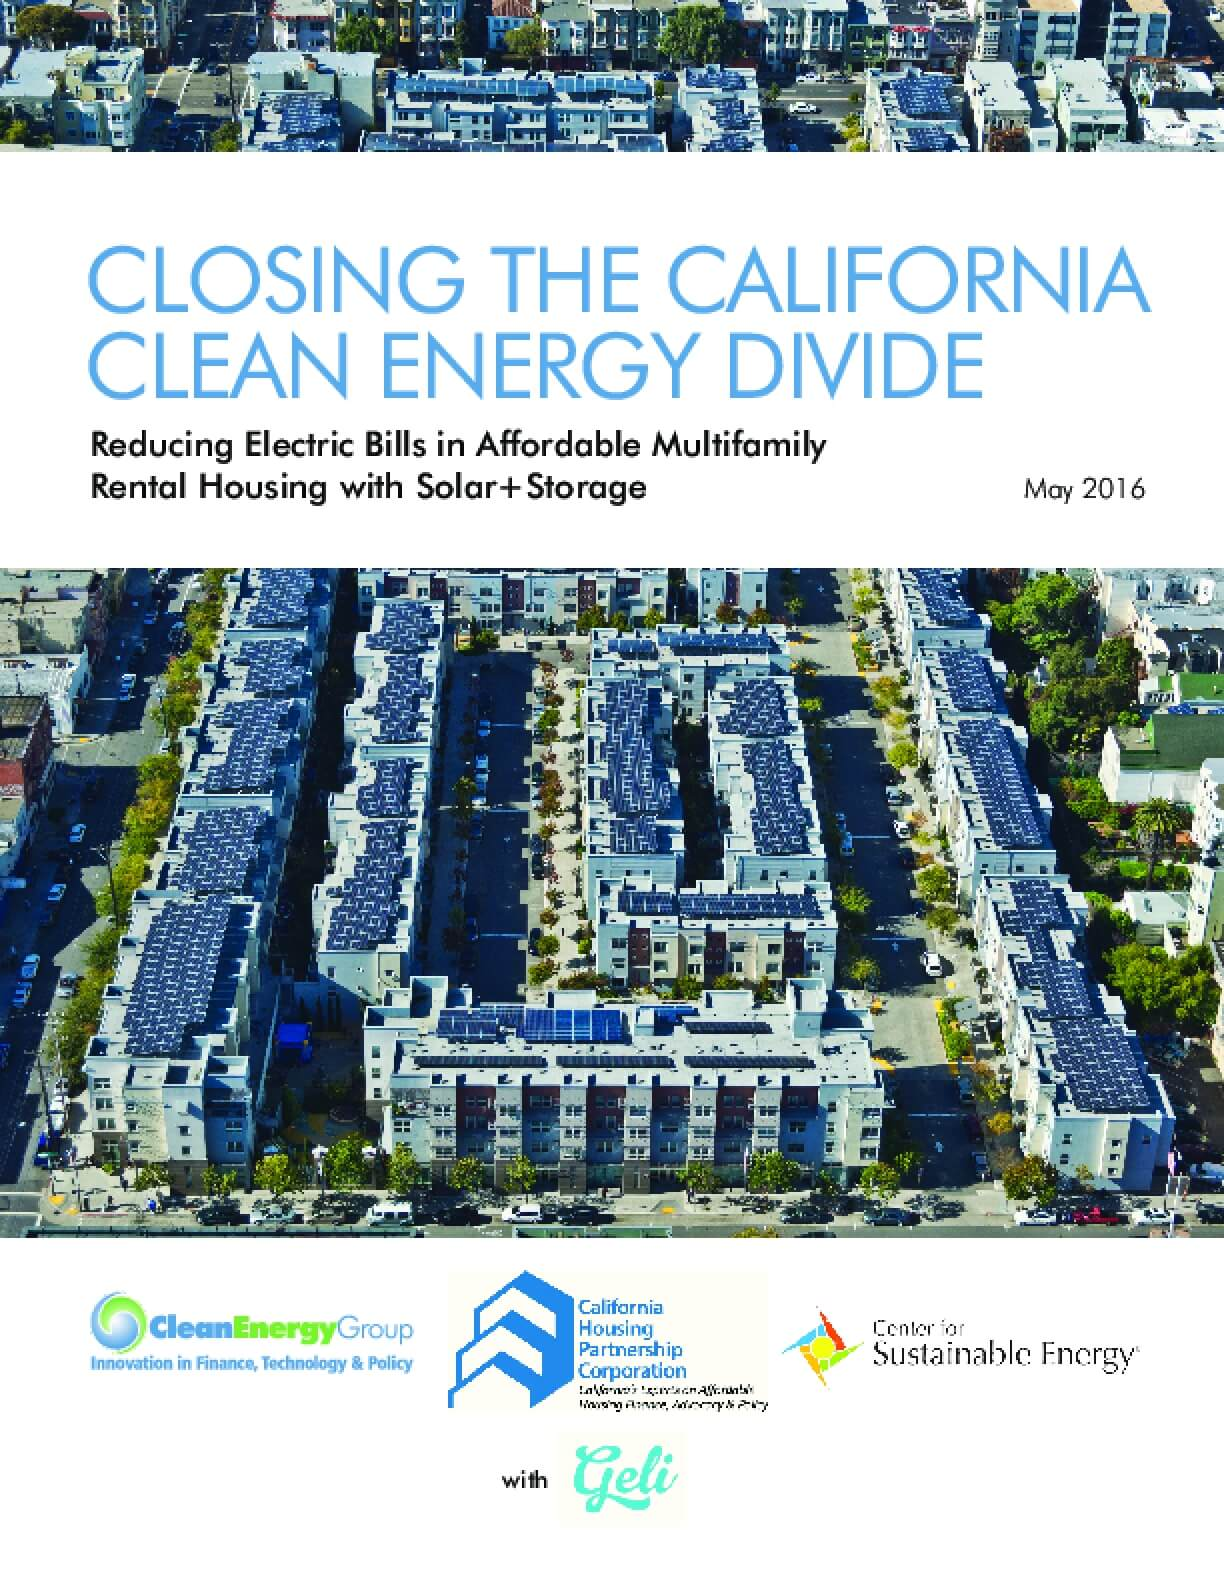 Closing the California Clean Energy Divide: Reducing Electric Bills in Affordable Multifamily Rental Housing with Solar+storage